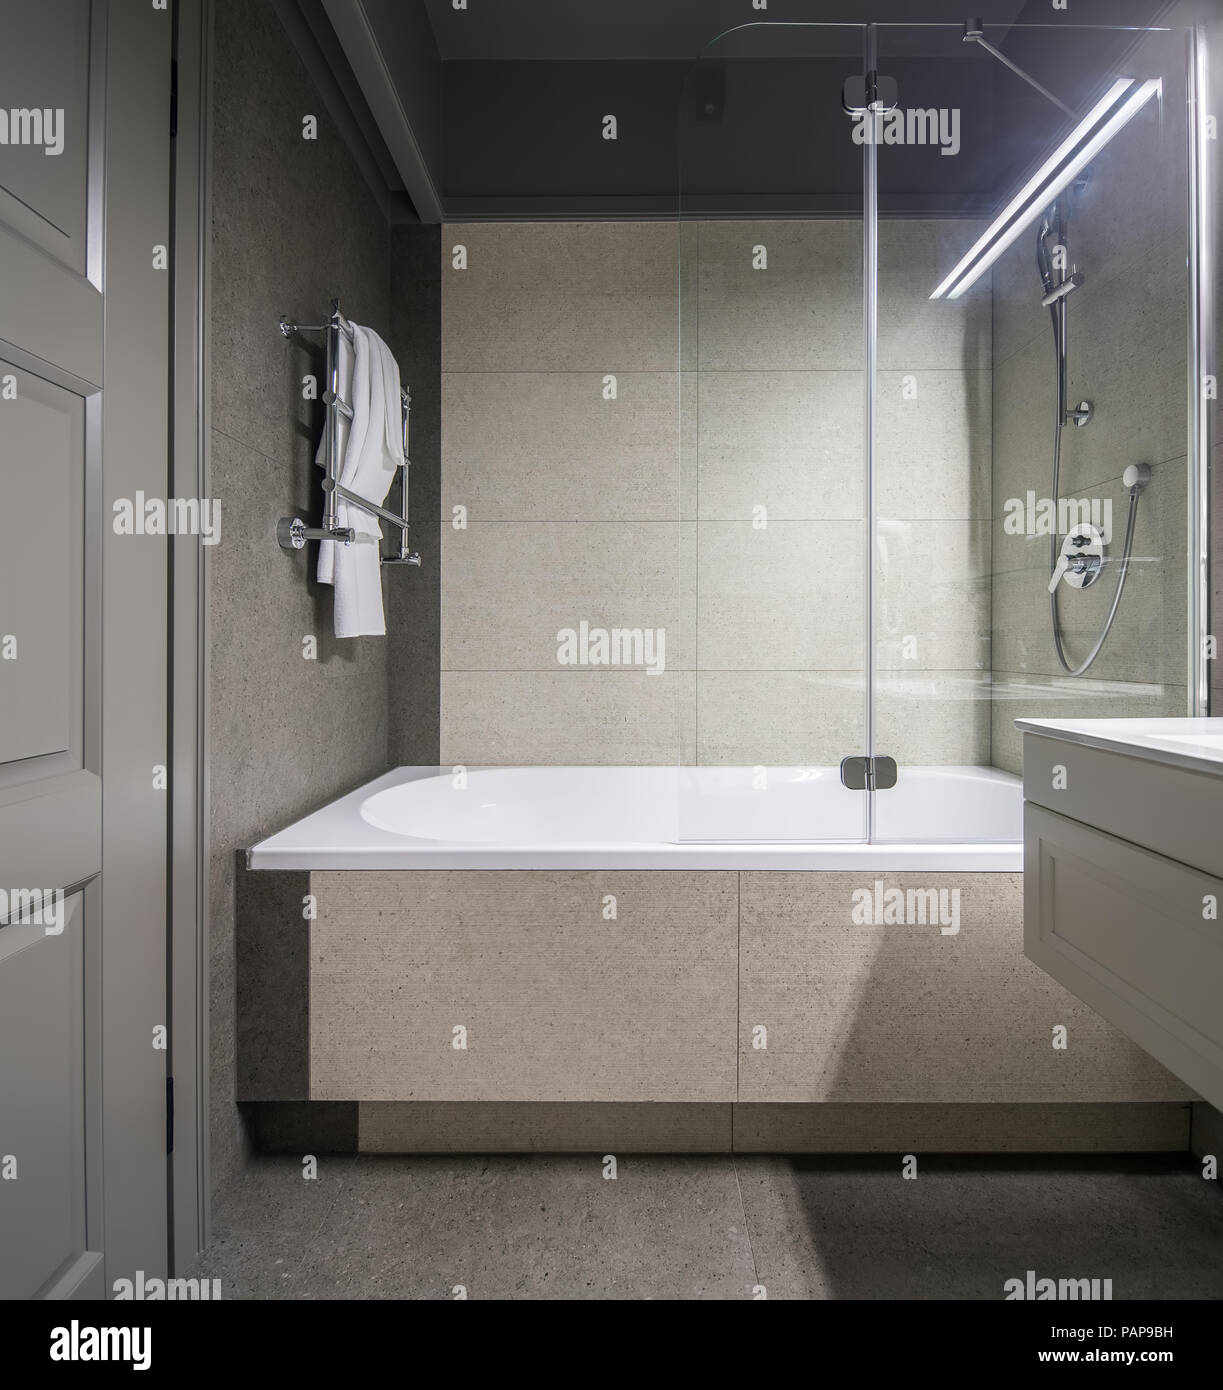 Stylish bathroom with light tiled walls. There is a white bath with ...